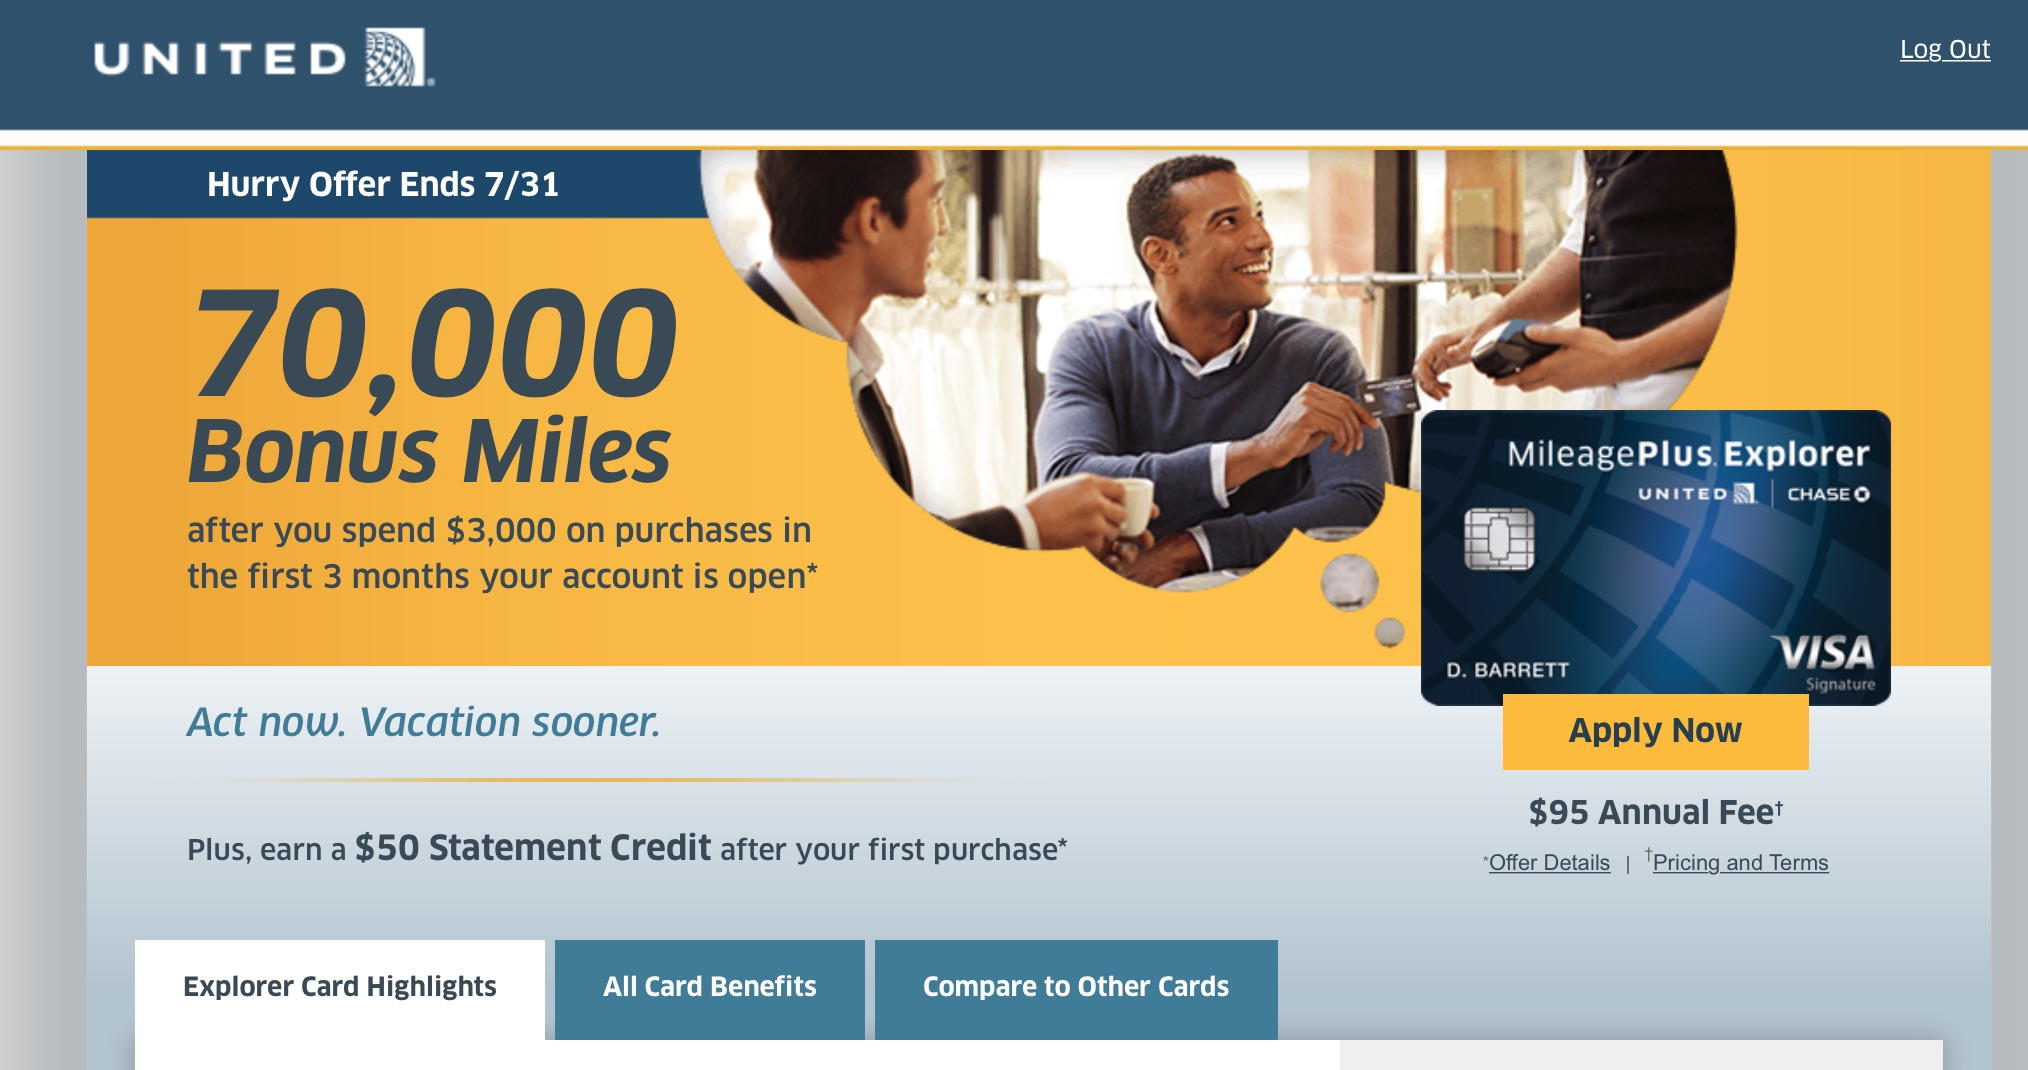 United Credit Card Customer Service Oddly I Was Approved For The United Mileageplus Explorer Card